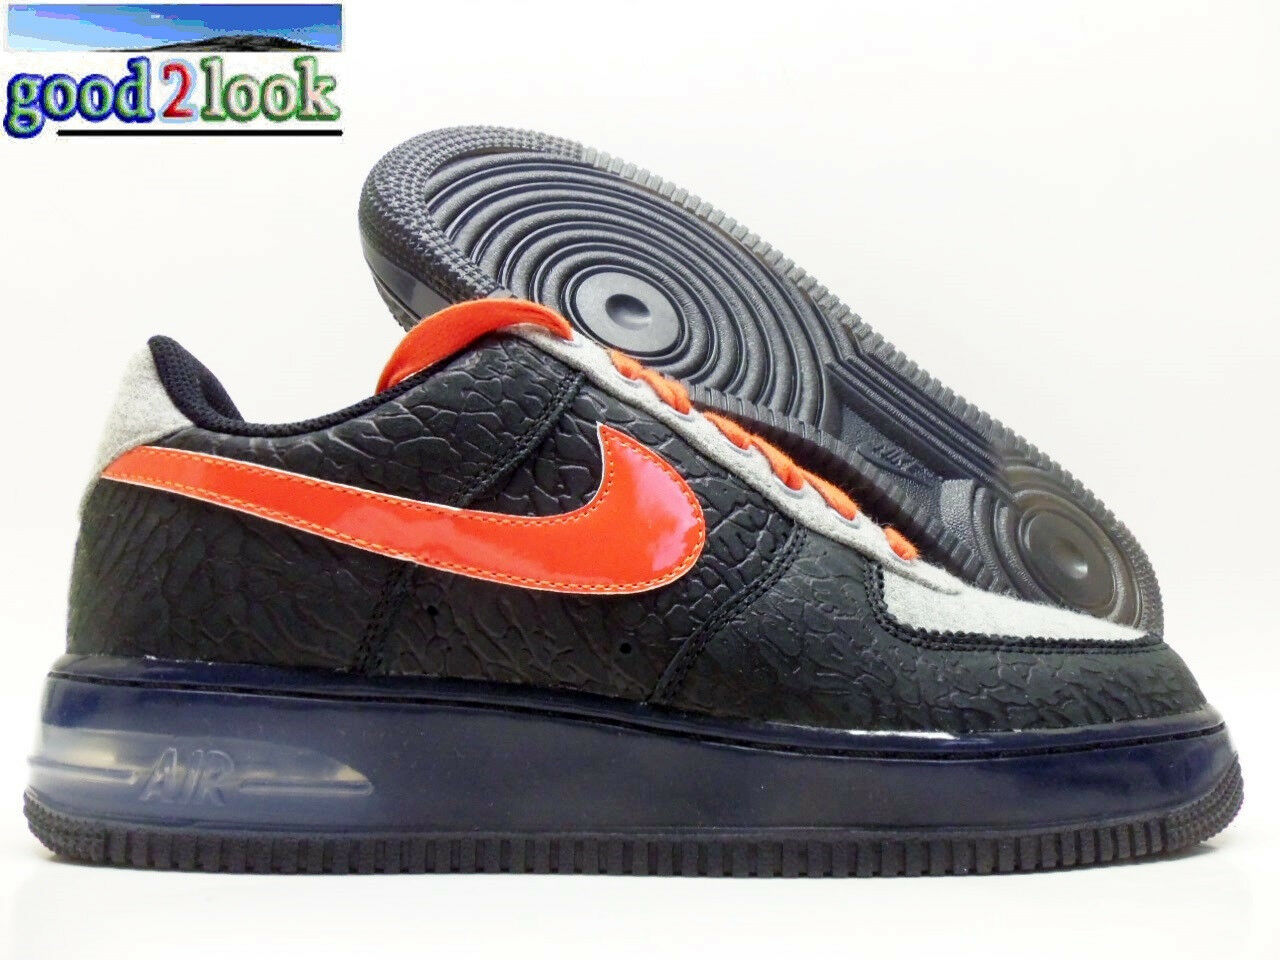 NIKE AIR FORCE 1 SUPREME MAX AIR NPCE QS BLACK/ORANGE MEN'S 10.5 [625907-001]